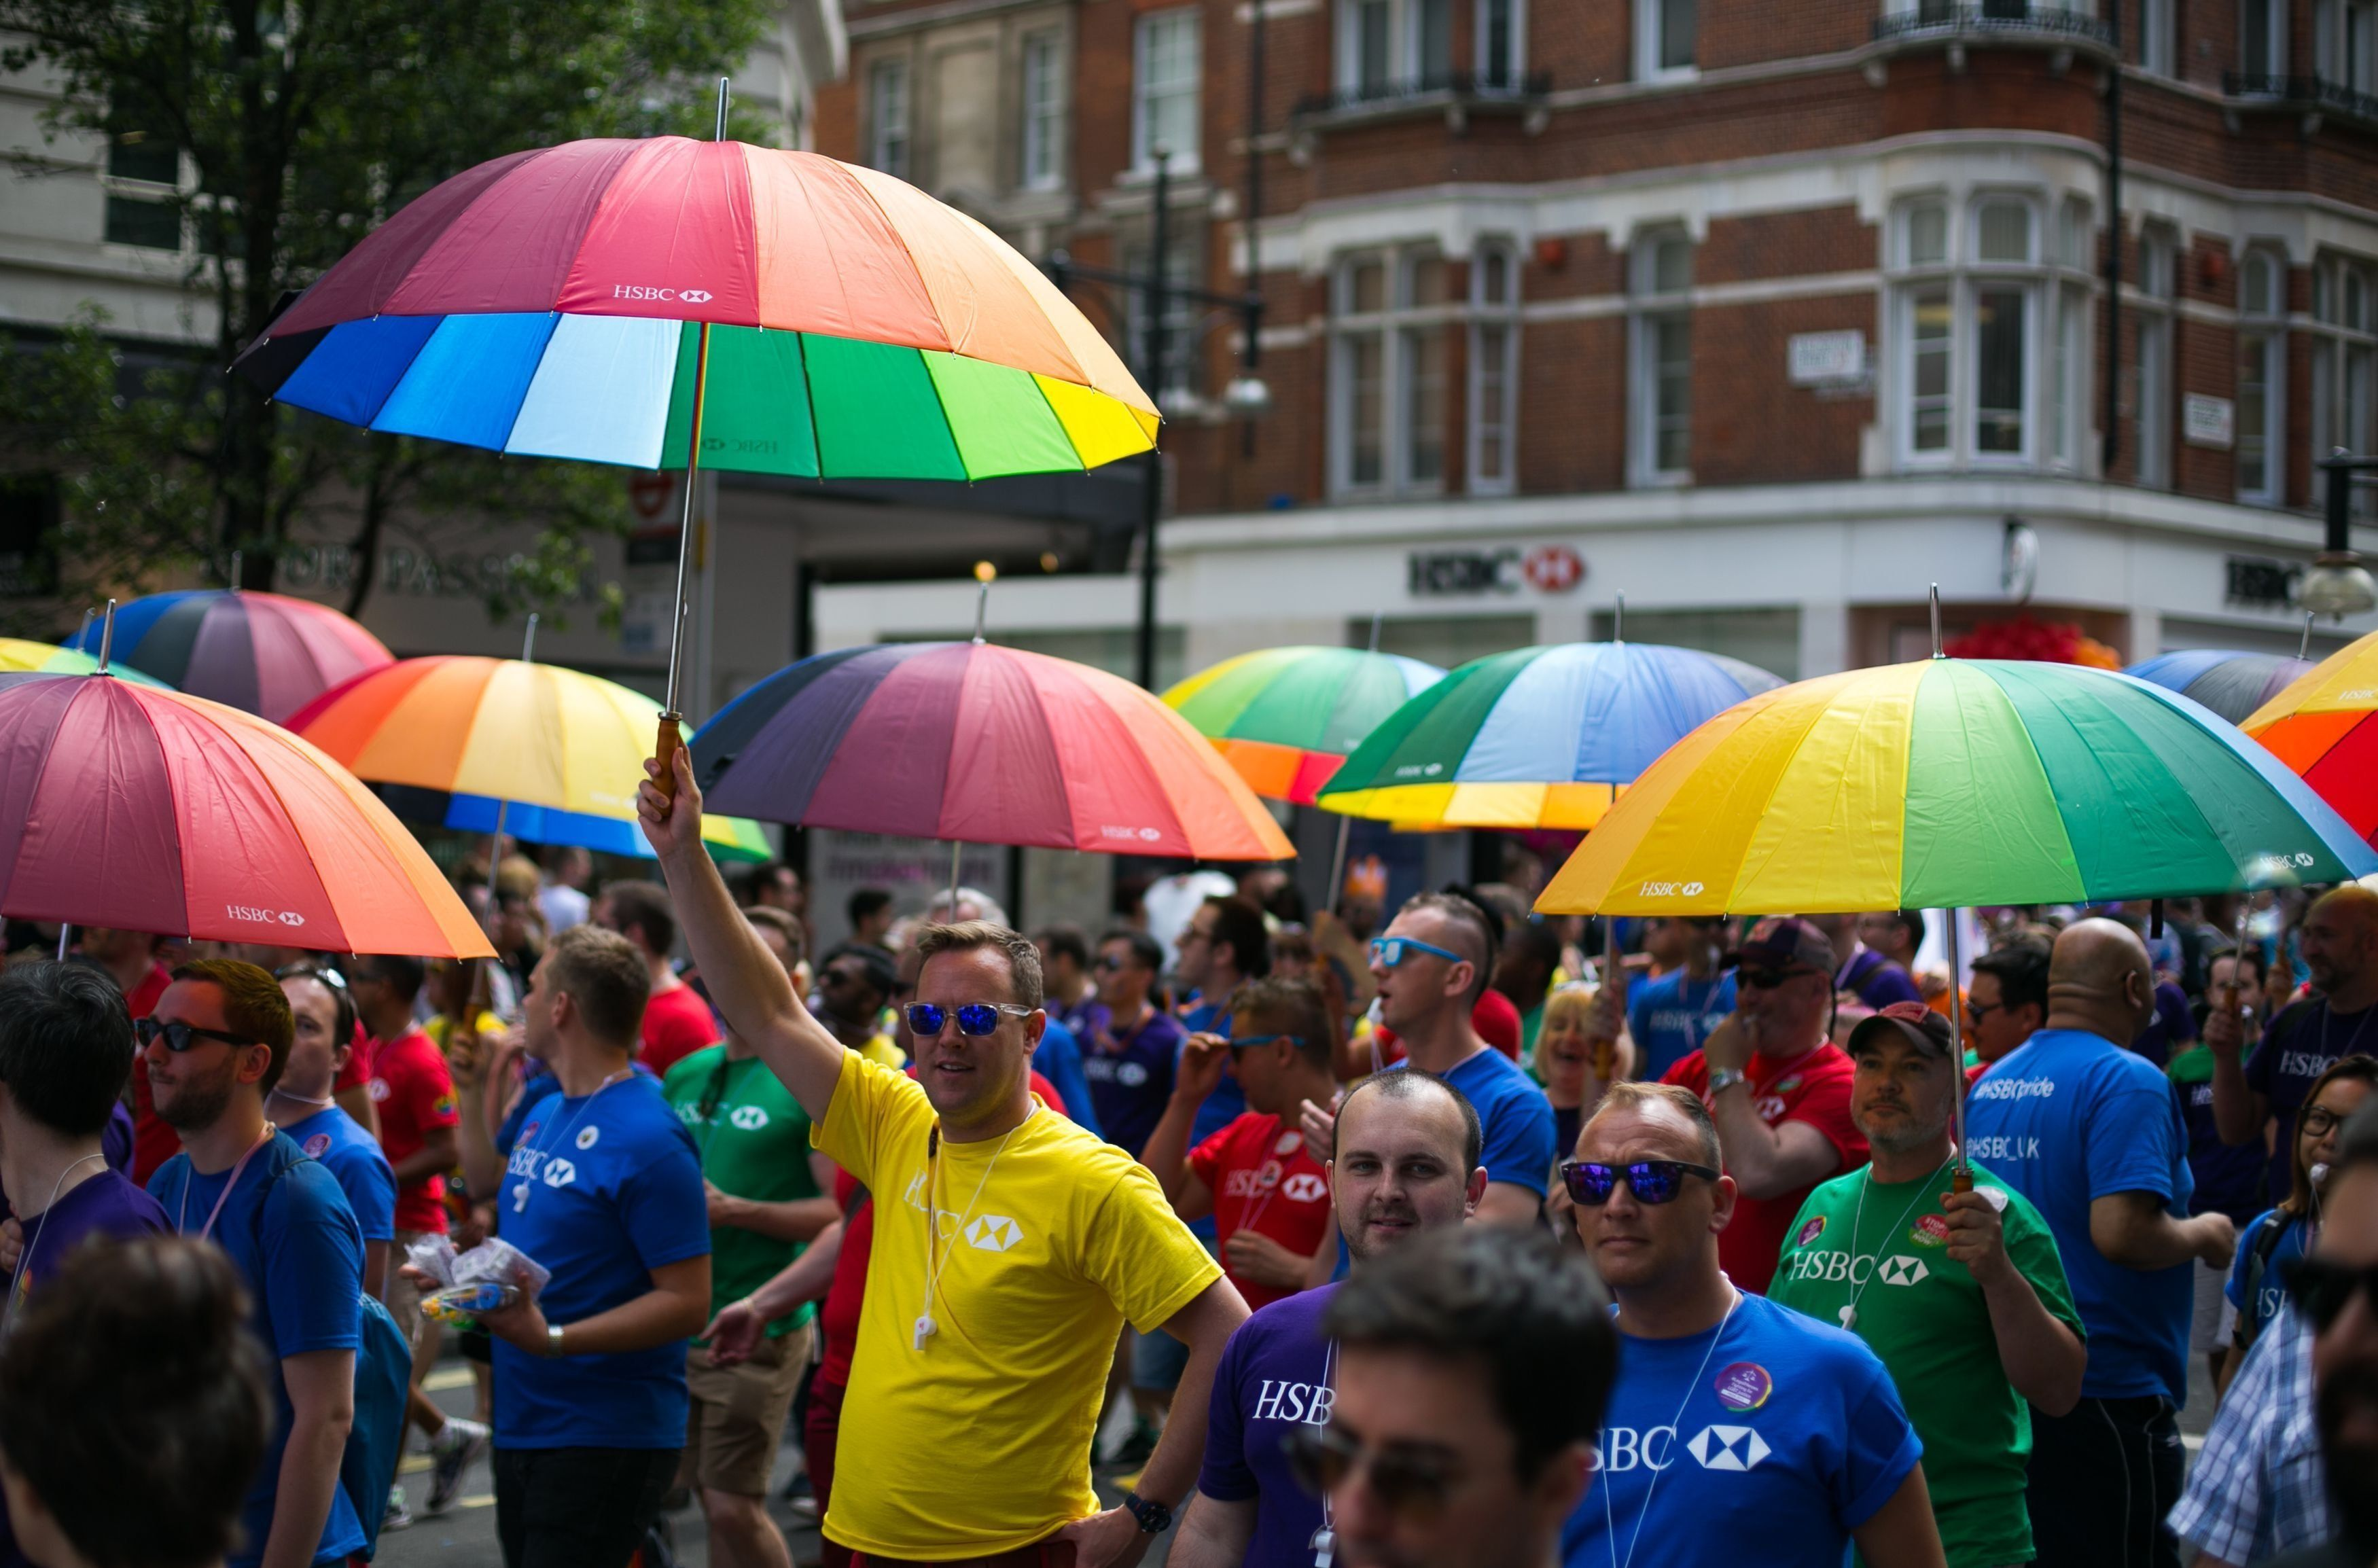 There is a range of Pride events to suit all